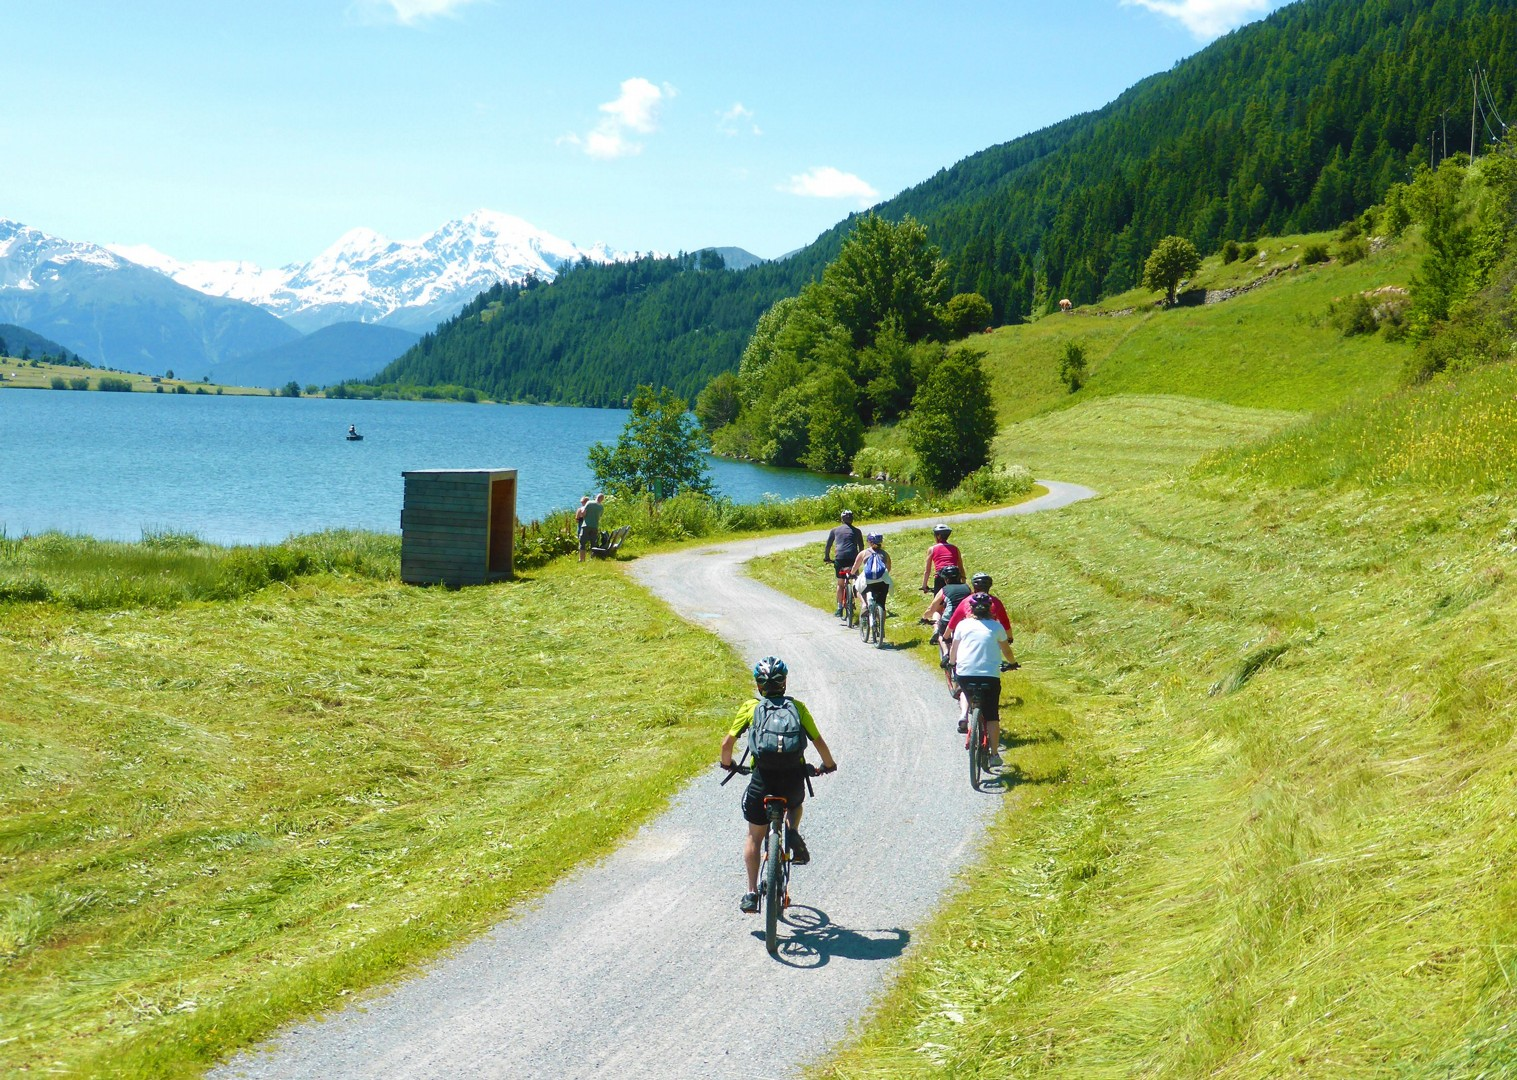 flat-smooth-terrain-ten-austrian-lakes-tour-family-cycling-holidays.jpg - Austria - Ten Lakes Tour - Self-Guided Family Cycling Holiday - Family Cycling